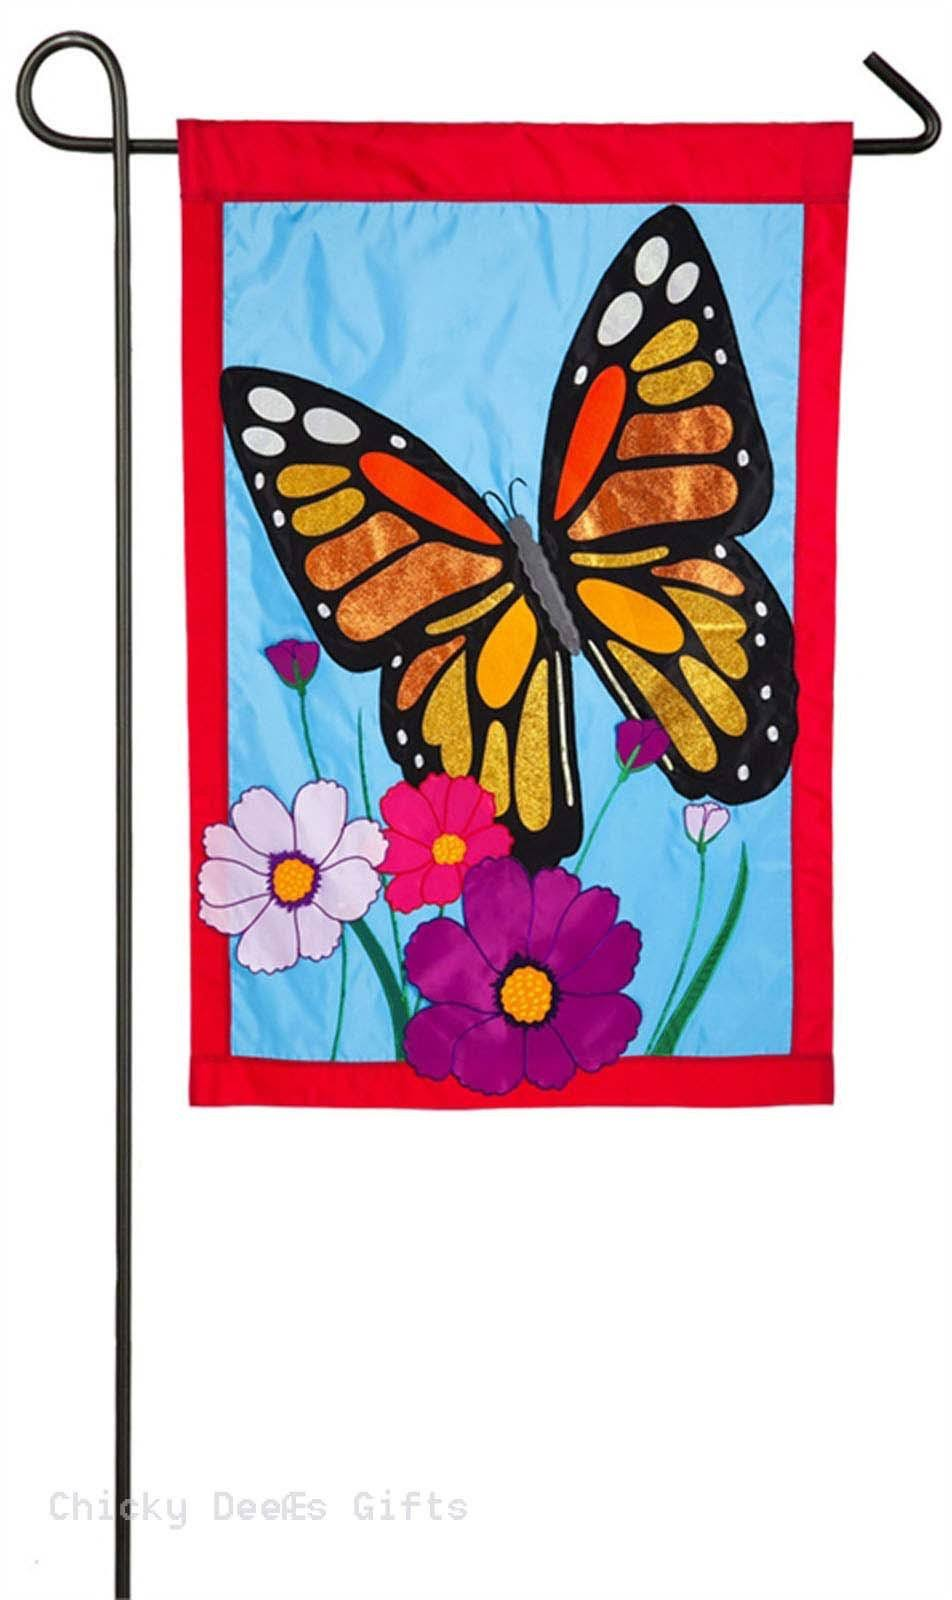 Evergreen Enterprises Monarch Butterfly Garden Flag